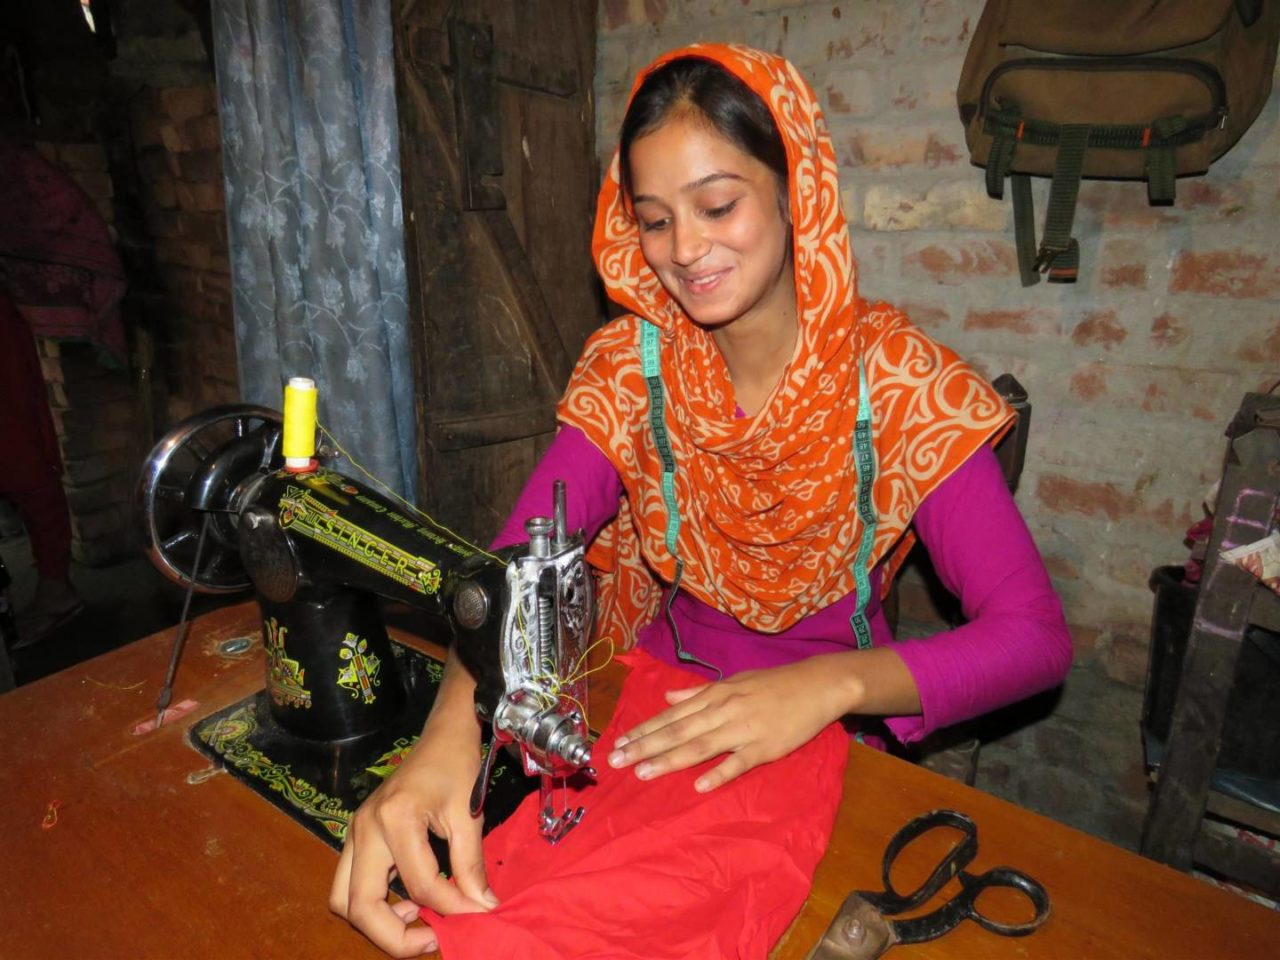 Tania used to work in a dangerous shrimp depot in Bangladesh. Now, with World Vision's help, she has received skills training to more safely provide for her family.